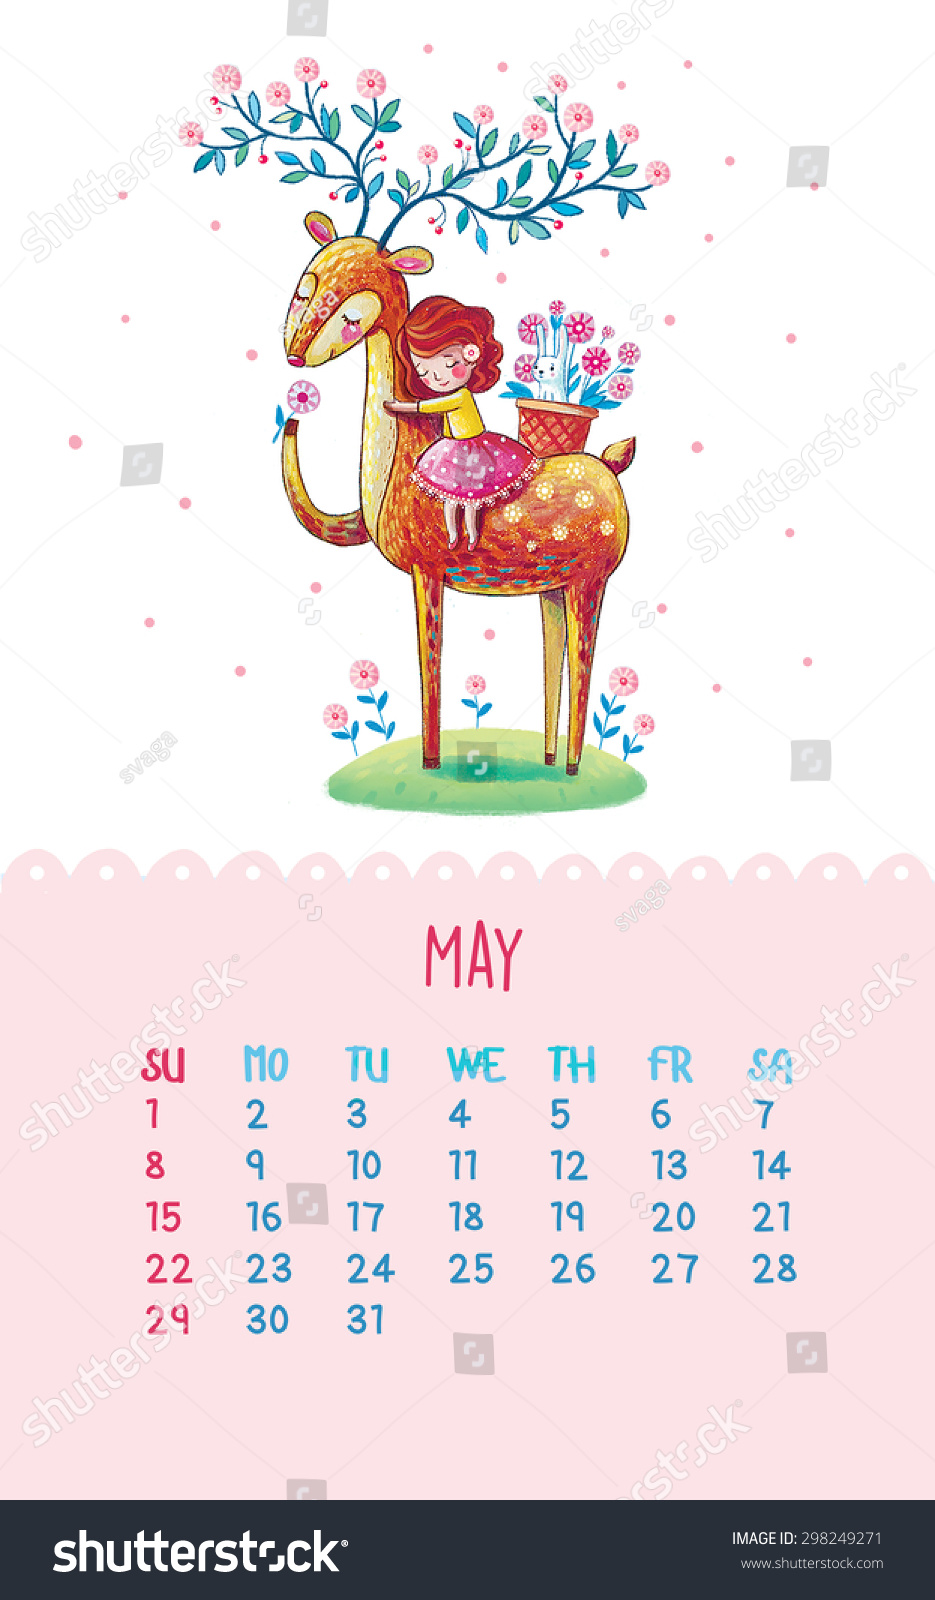 Cute Calendar Illustration : Cute calendar for with hand drawing illustration may